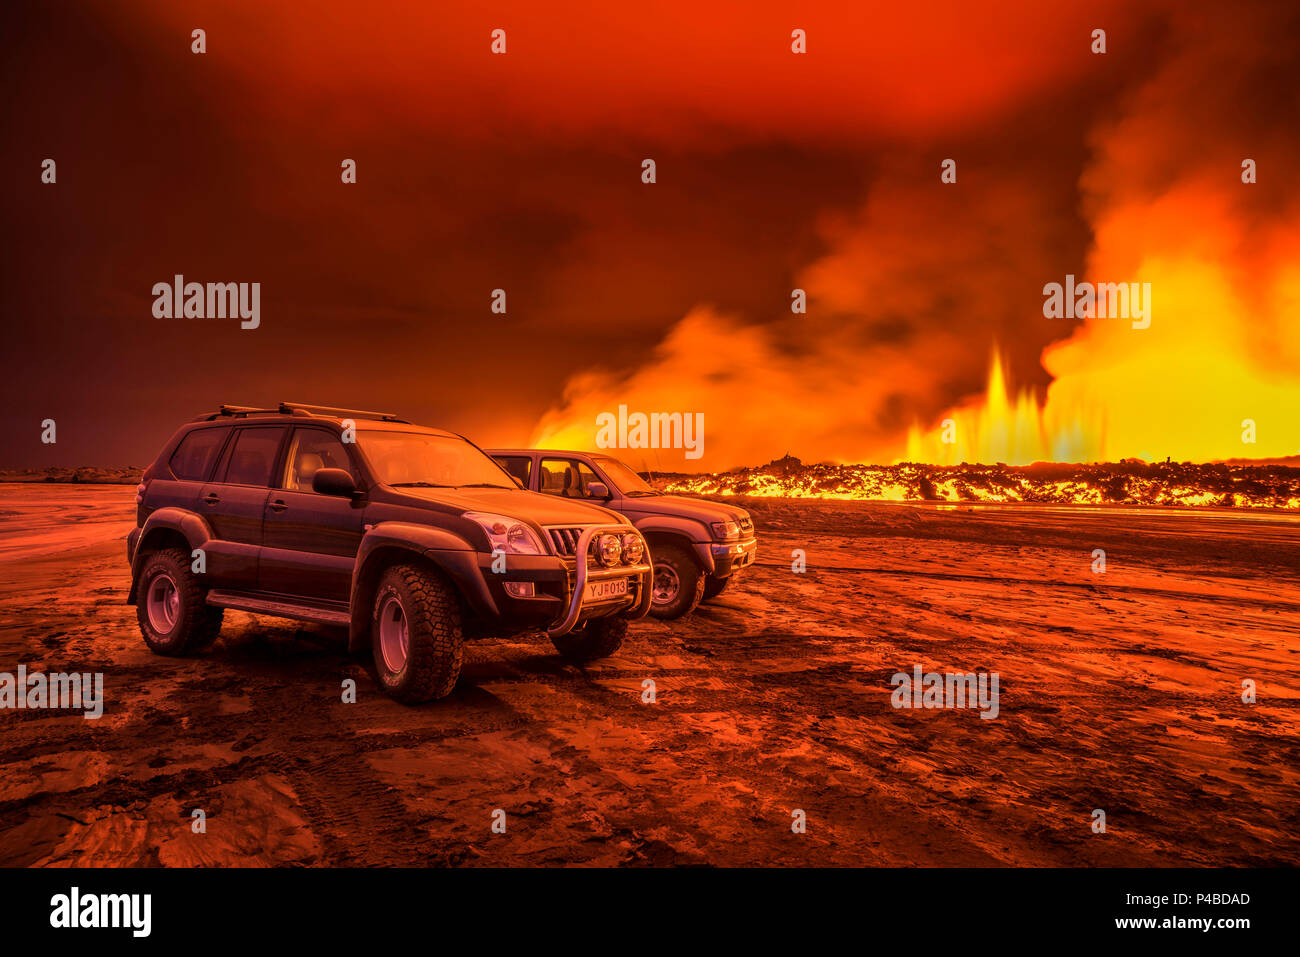 SUVs close to the Eruption at Holuhraun, near the Bardarbunga Volcano, Iceland. August 29, 2014 a fissure eruption started in Holuhraun at the northern end of a magma intrusion, which had moved progressively north, from the Bardarbunga volcano. Picture Date-Sept. 2, 2014 - Stock Image